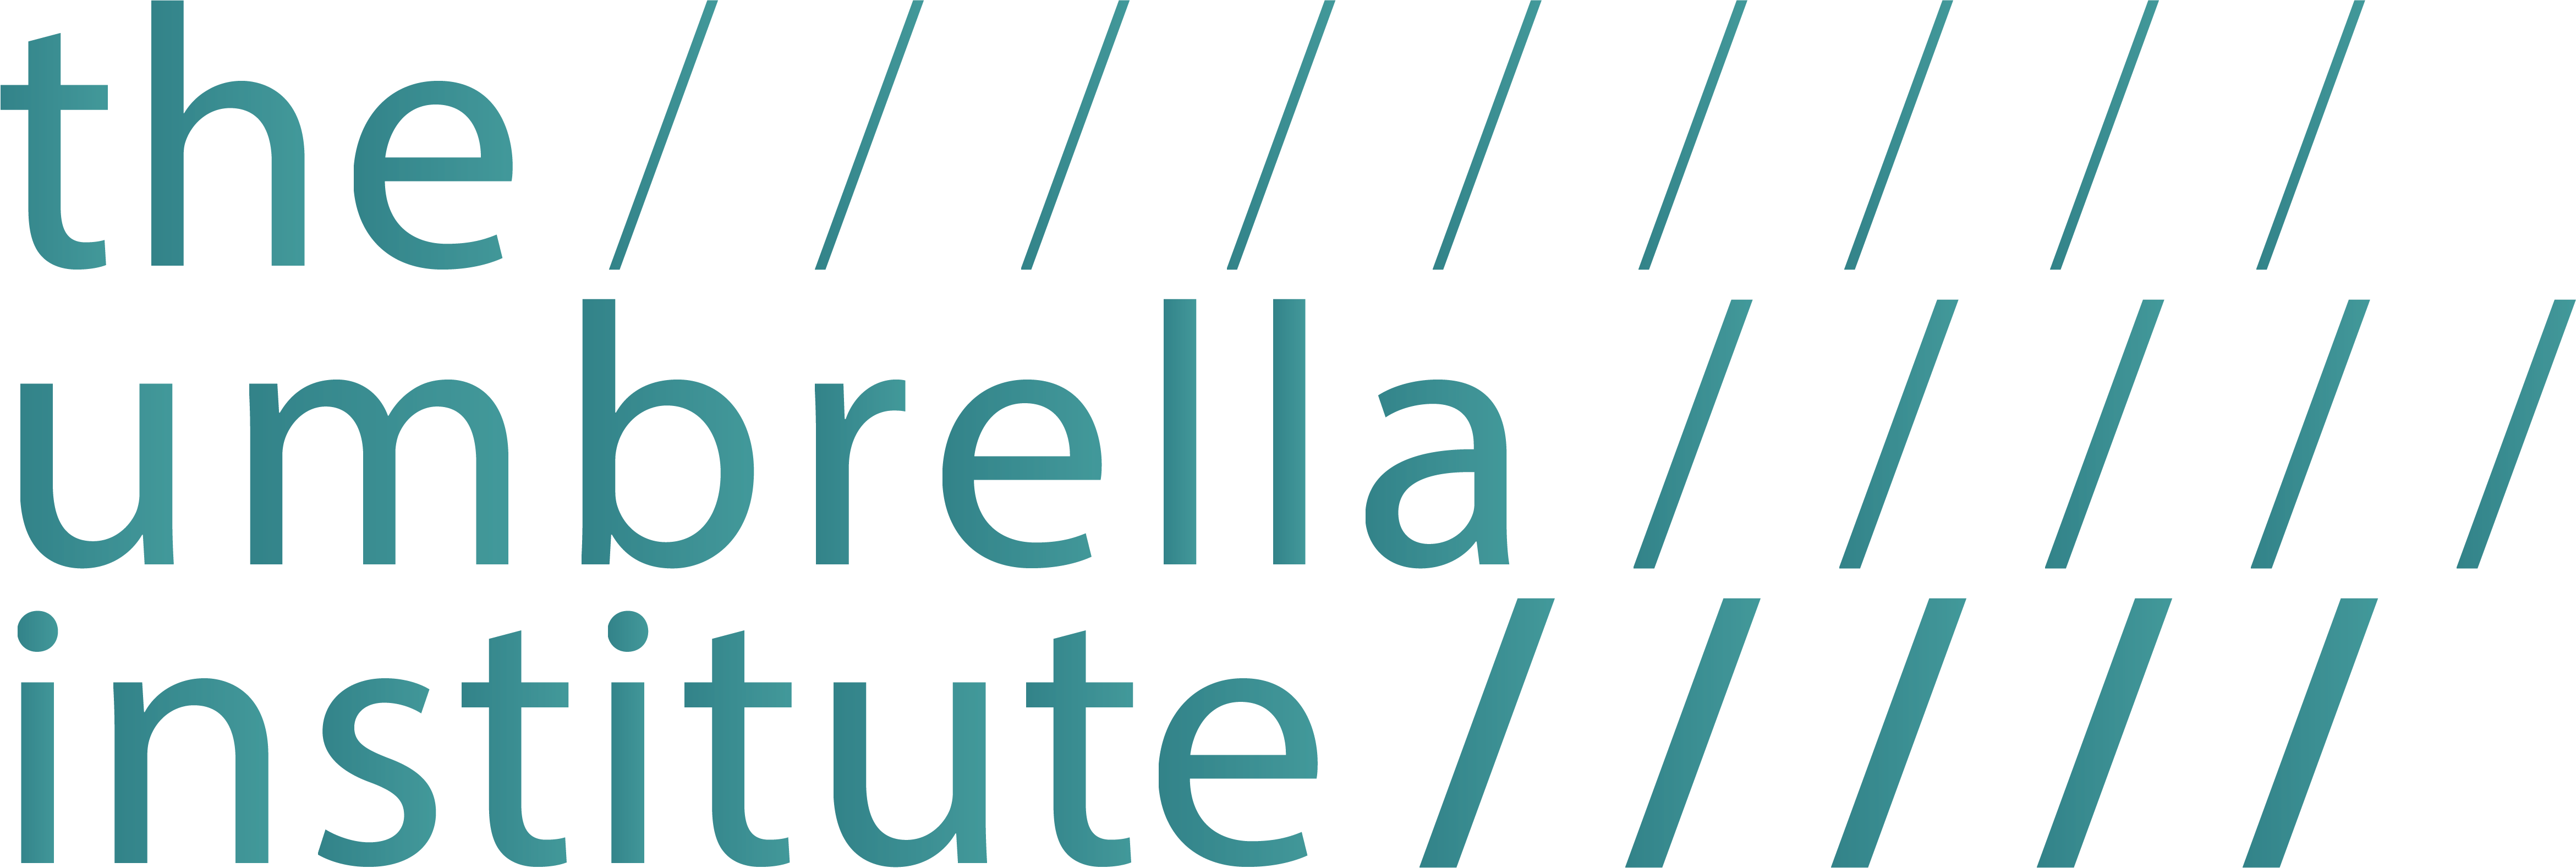 The Umbrella Institute